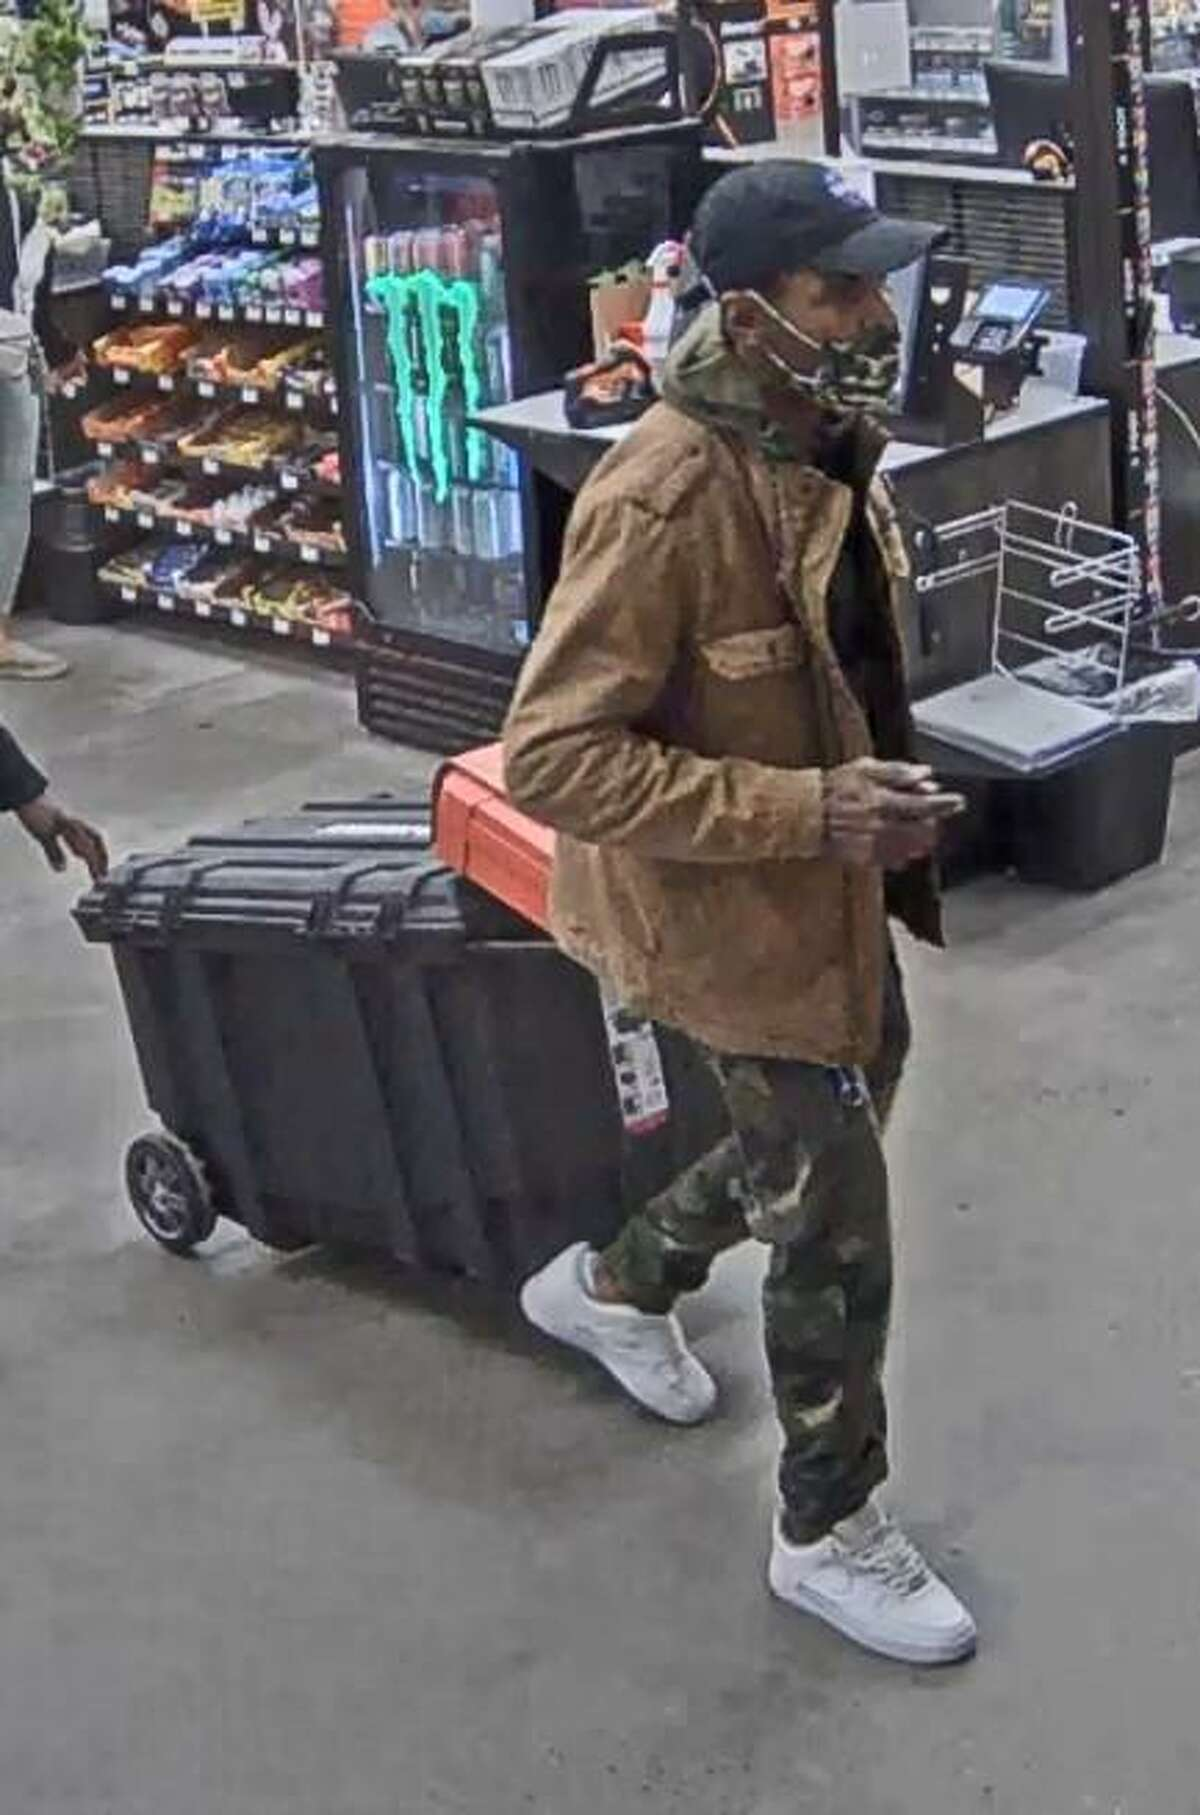 Norwalk police say they are looking for a man who stole items from the Connecticut Avenue Home Depot last week.